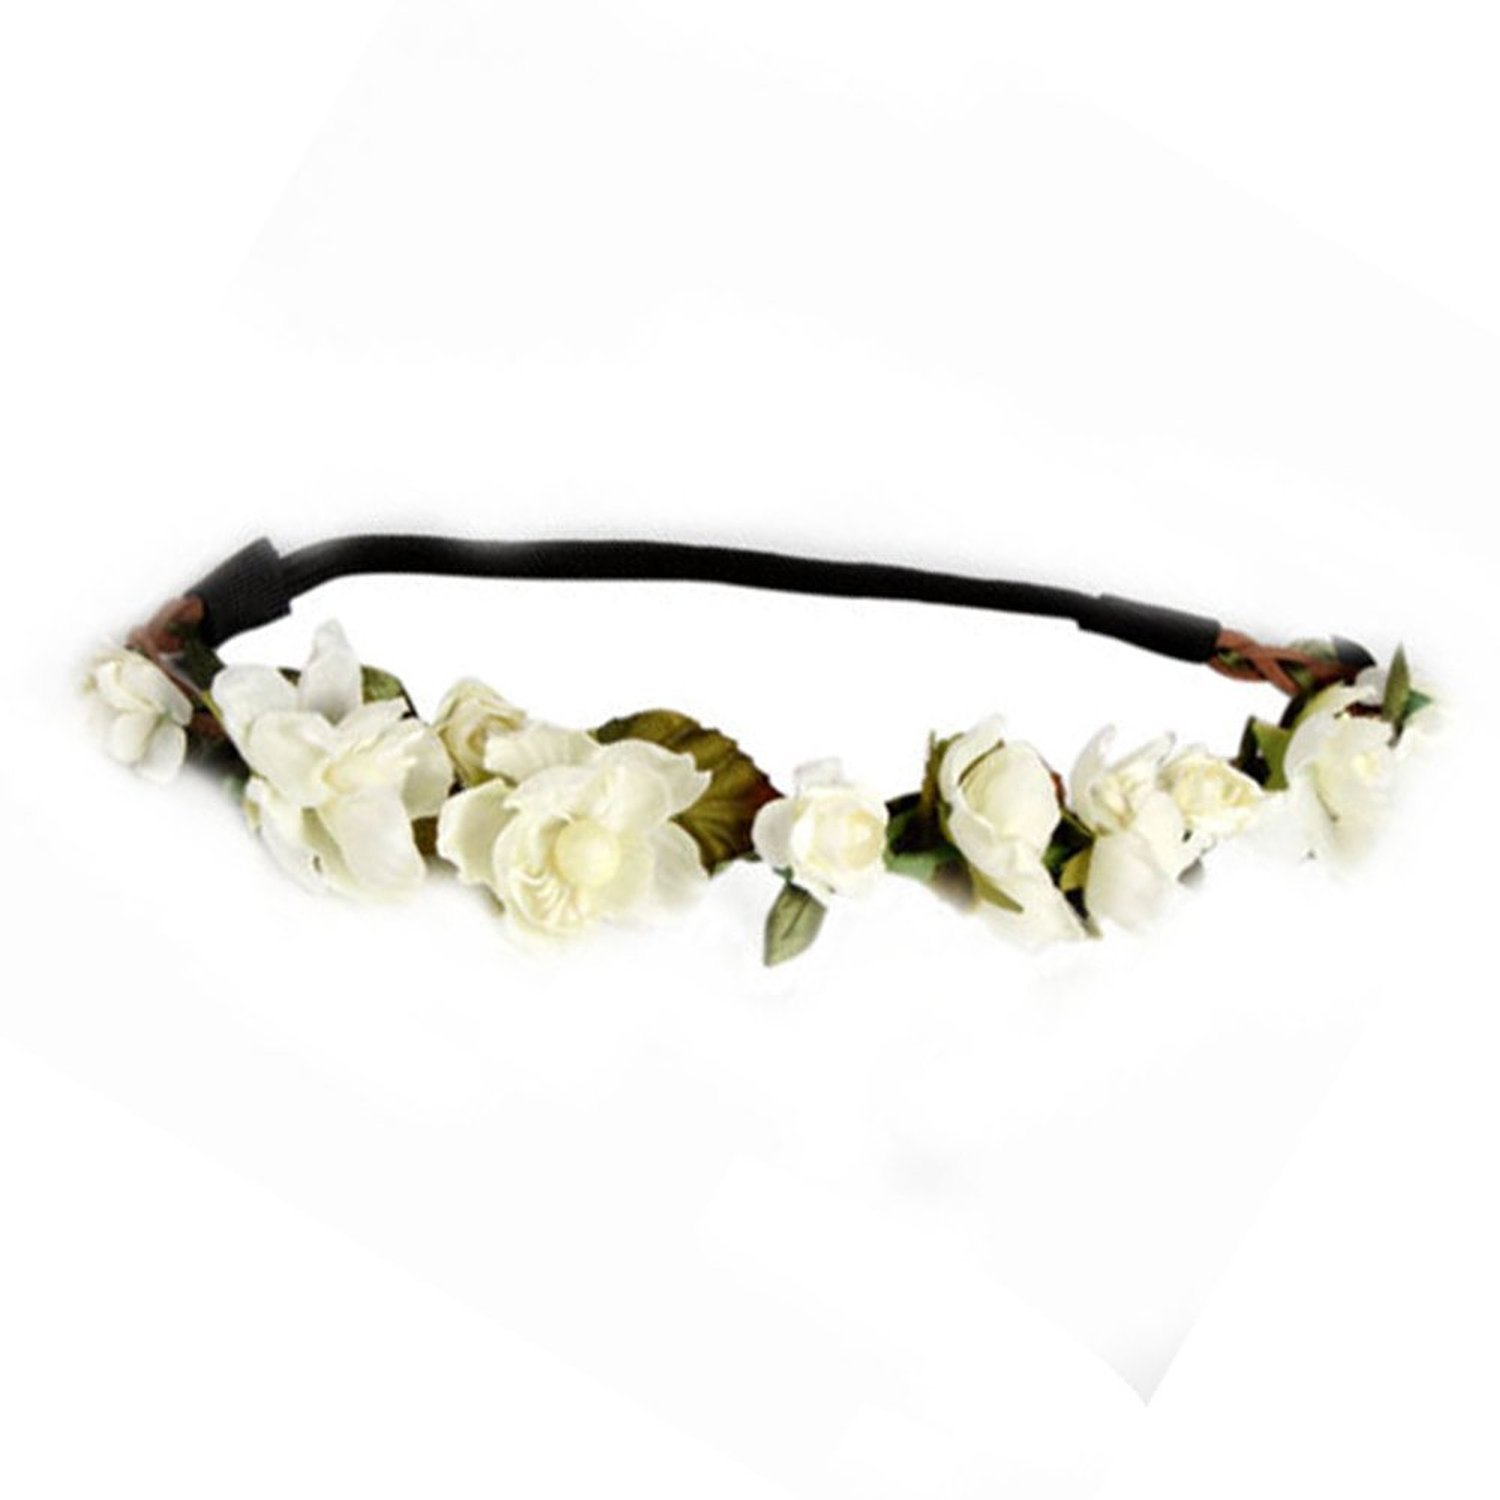 Amazon floral fall cute stretch flower crown party headband amazon floral fall cute stretch flower crown party headband wedding hair wreath f 003 blue clothing izmirmasajfo